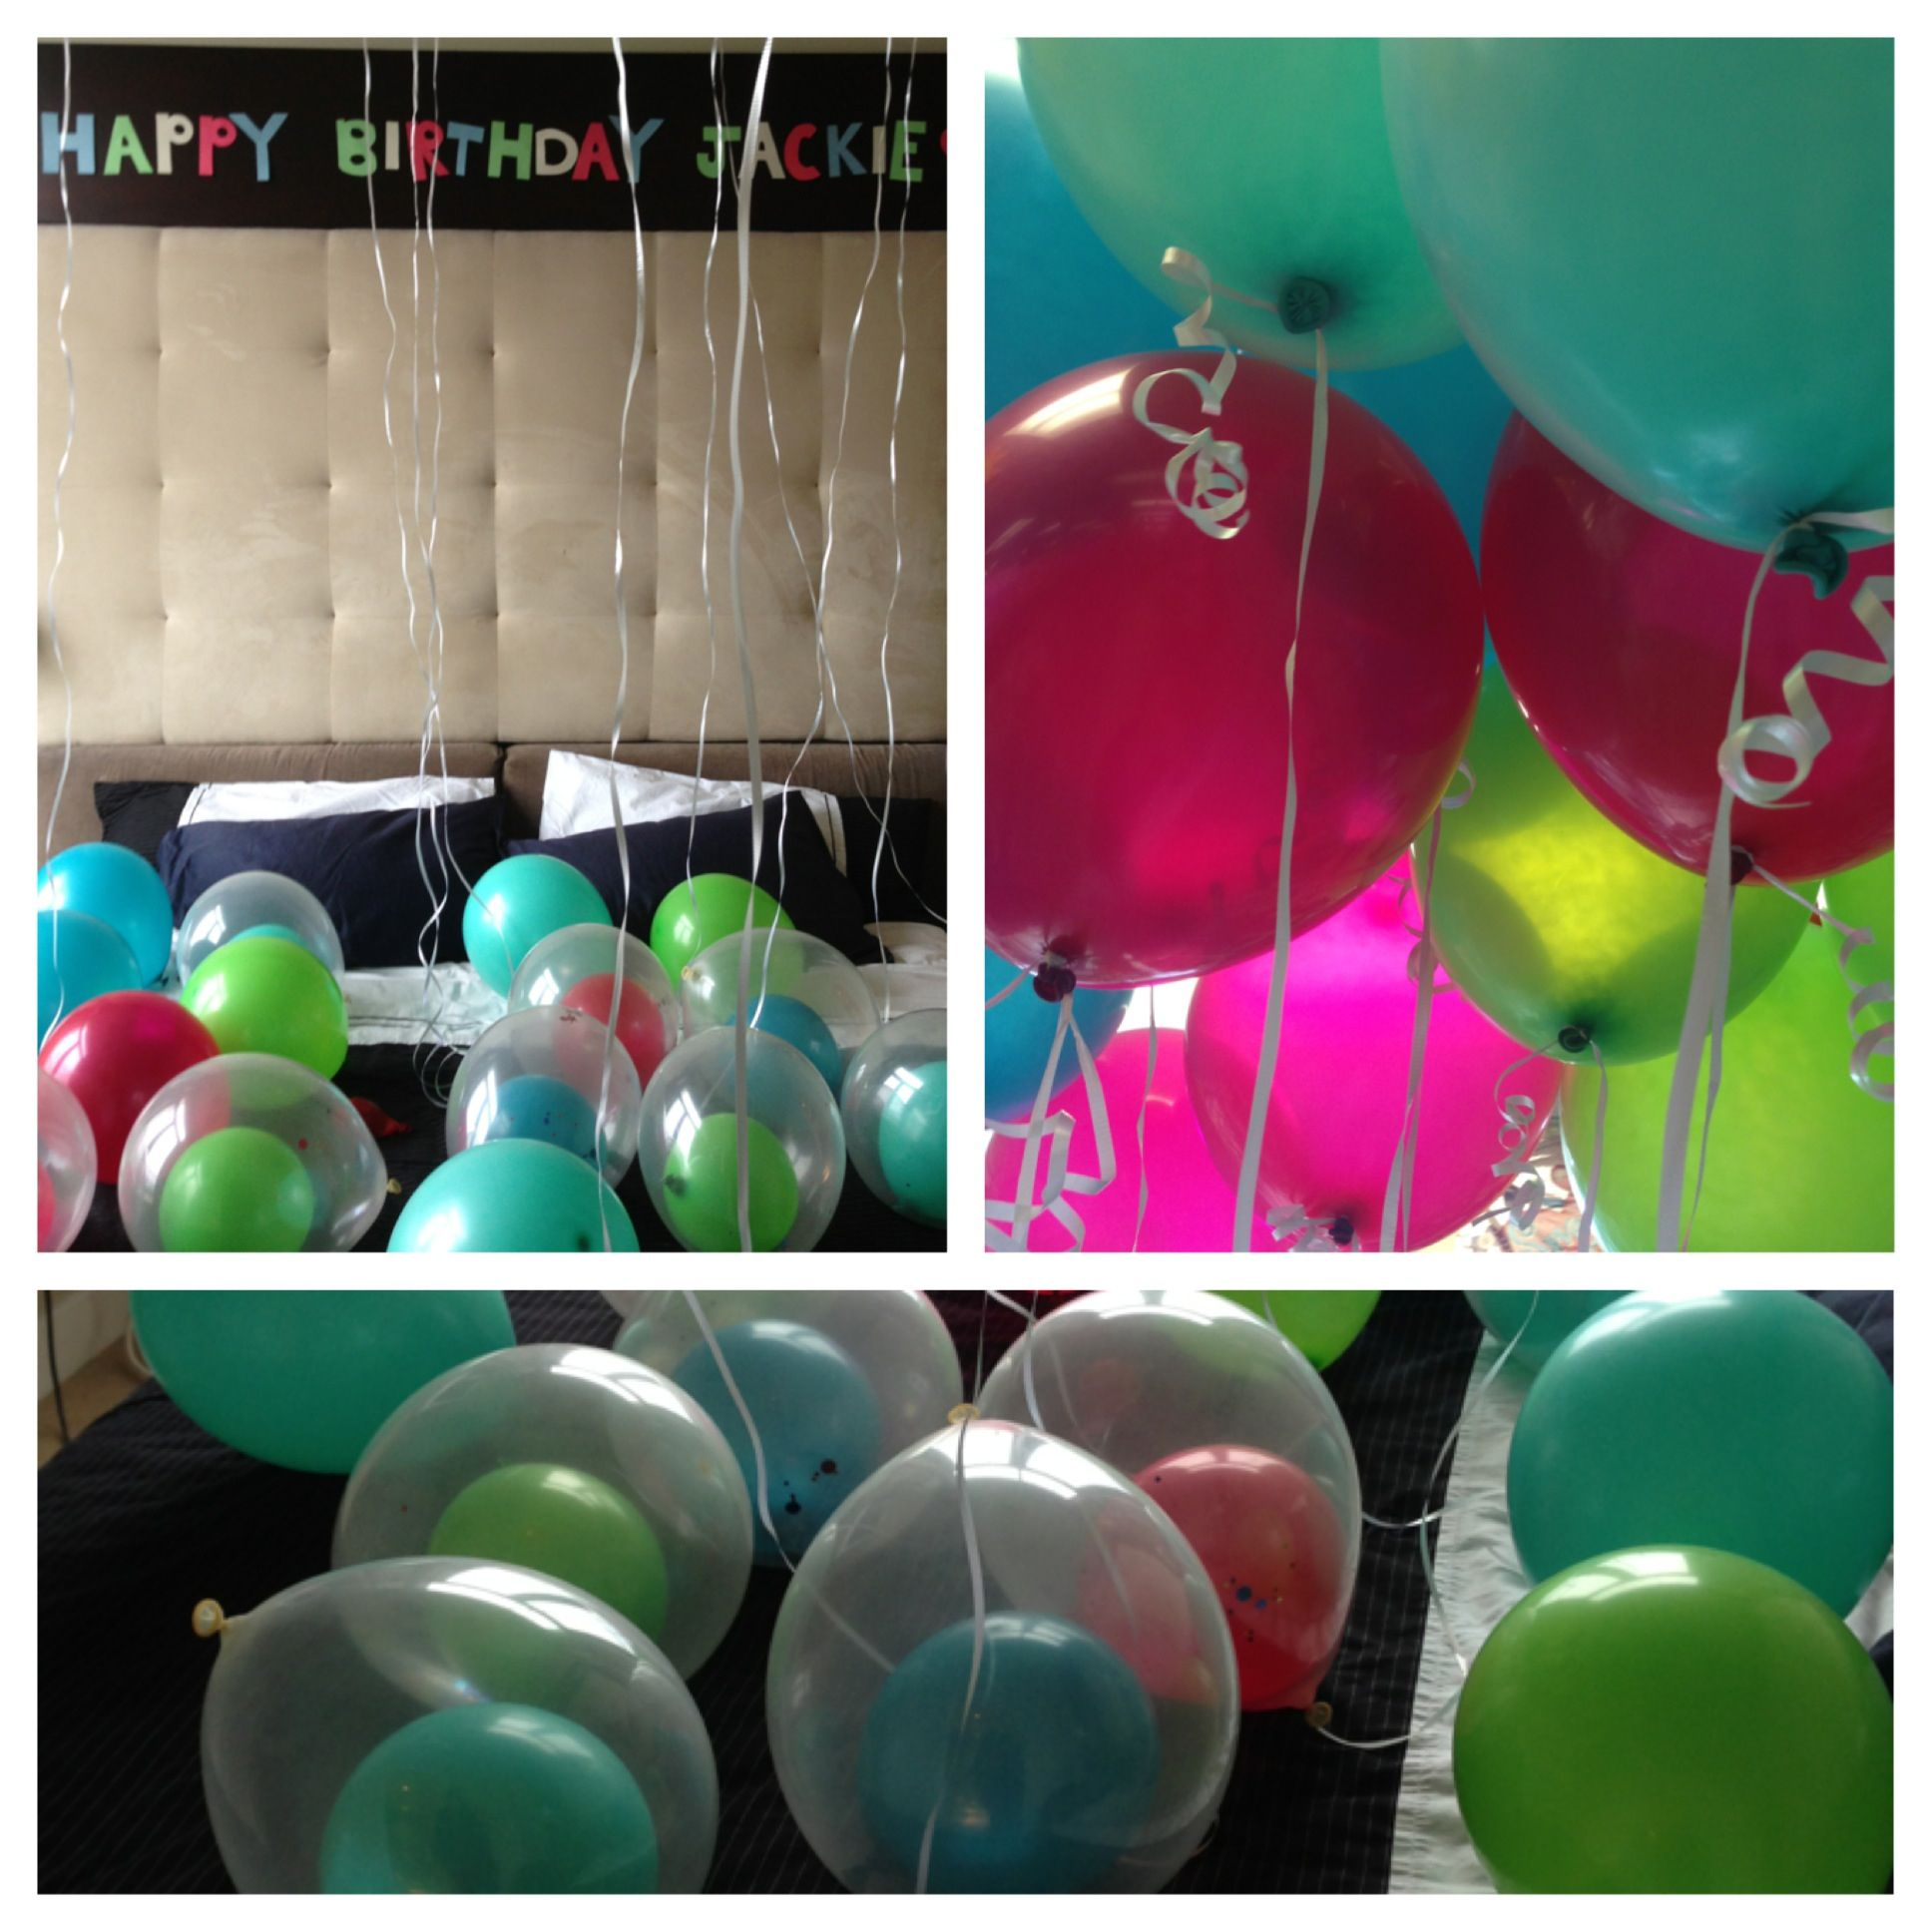 Had This As A Surprise For My Boyfriend When He Got Home 19 Helium Balloons For His 19th